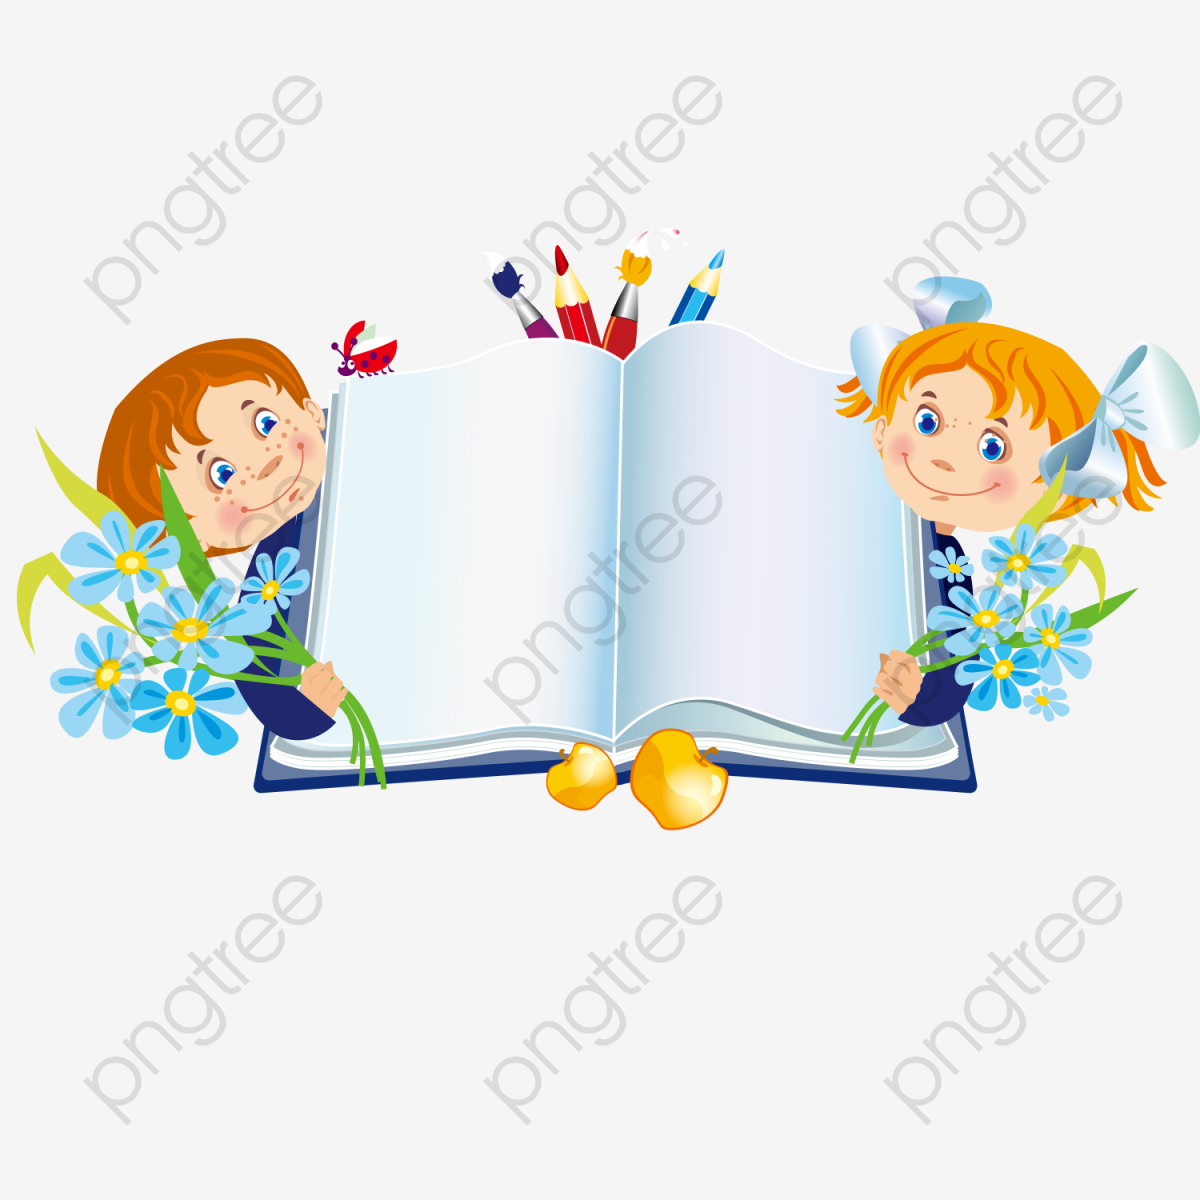 Holding The Book Of Children, Book Clipart, Children Clipart, Book.